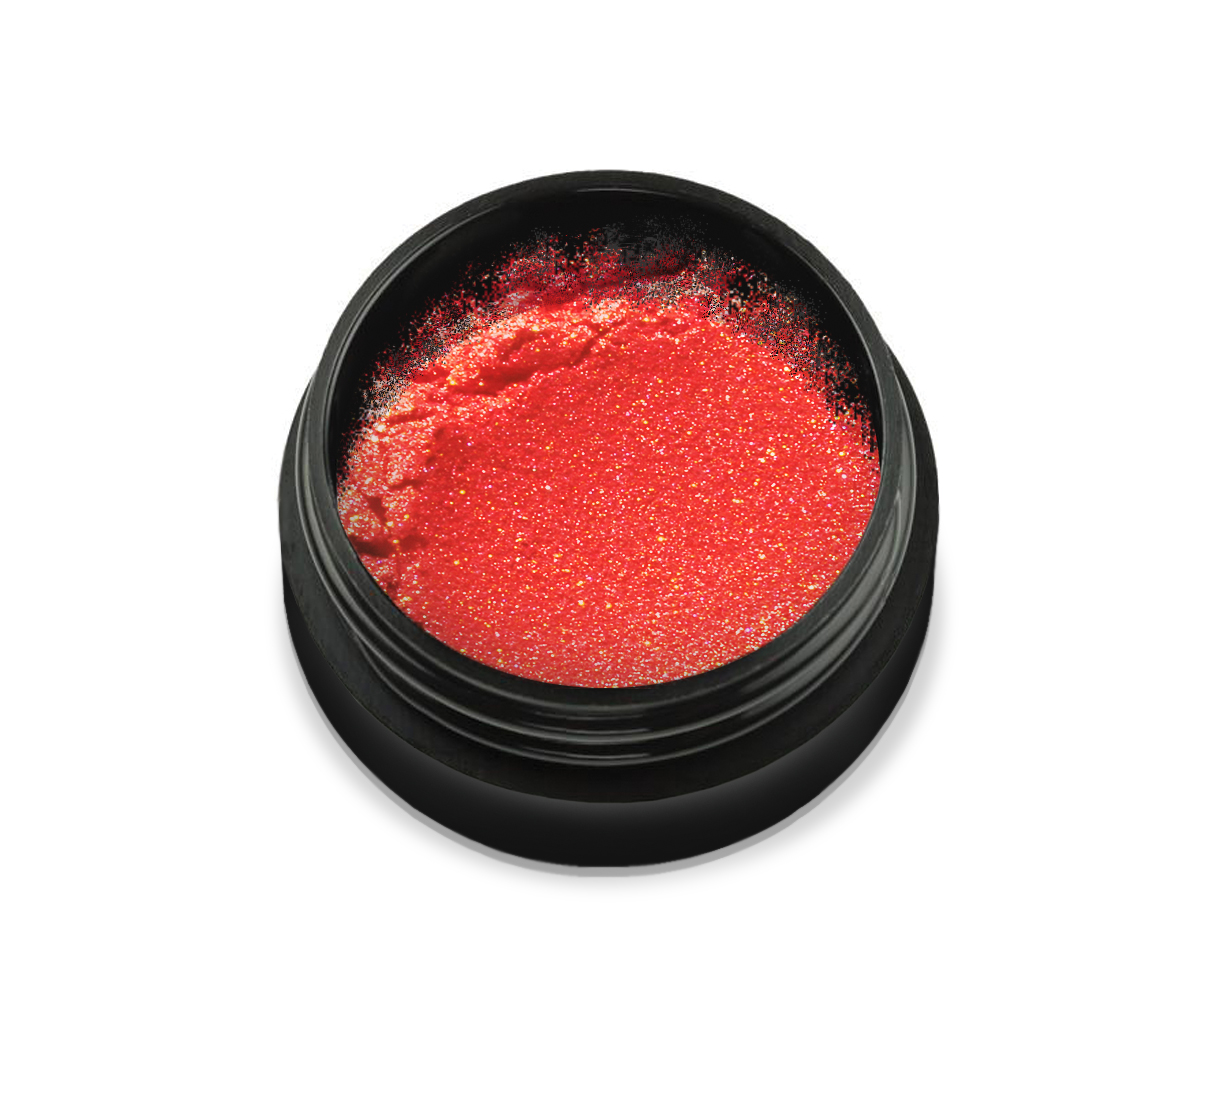 "6214 Pudra cu pigmenti 'Didier Lab"", bright red 2,5g/Pigment powder 'Didier Lab"", bright red"